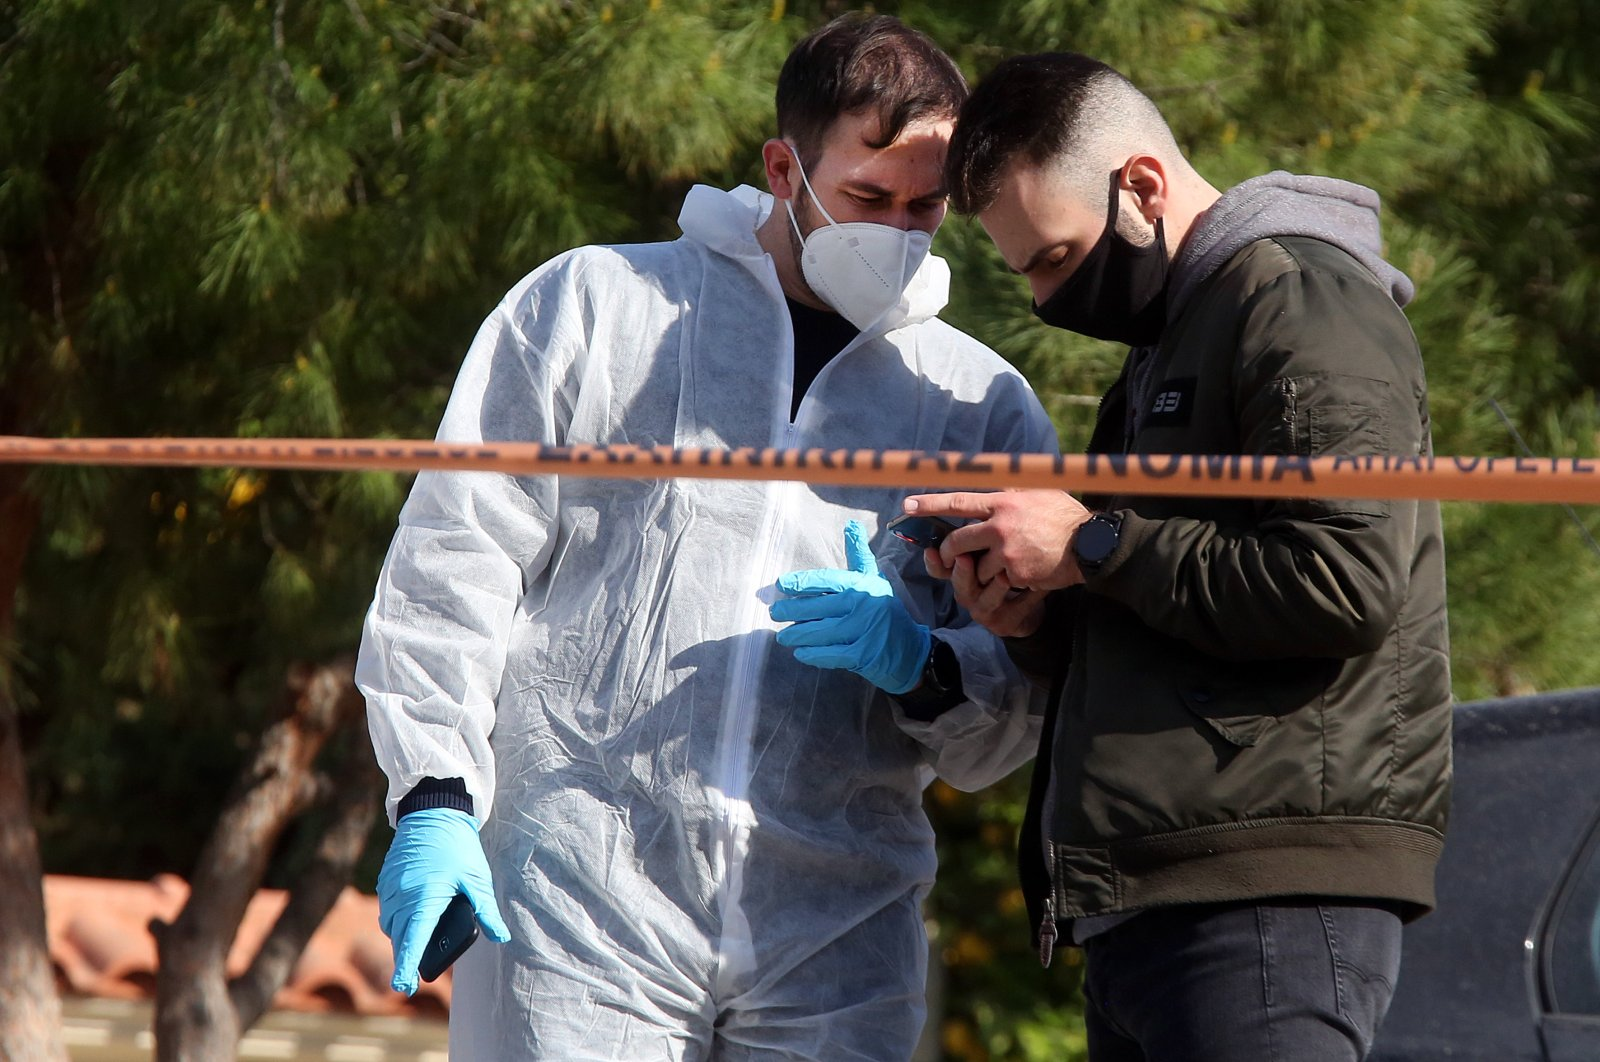 Police officers investigate the area outside the home of murdered Greek journalist Giorgos Karaivaz in Alimos, Attica, Greece, April 9, 2021. (EPA Photo)